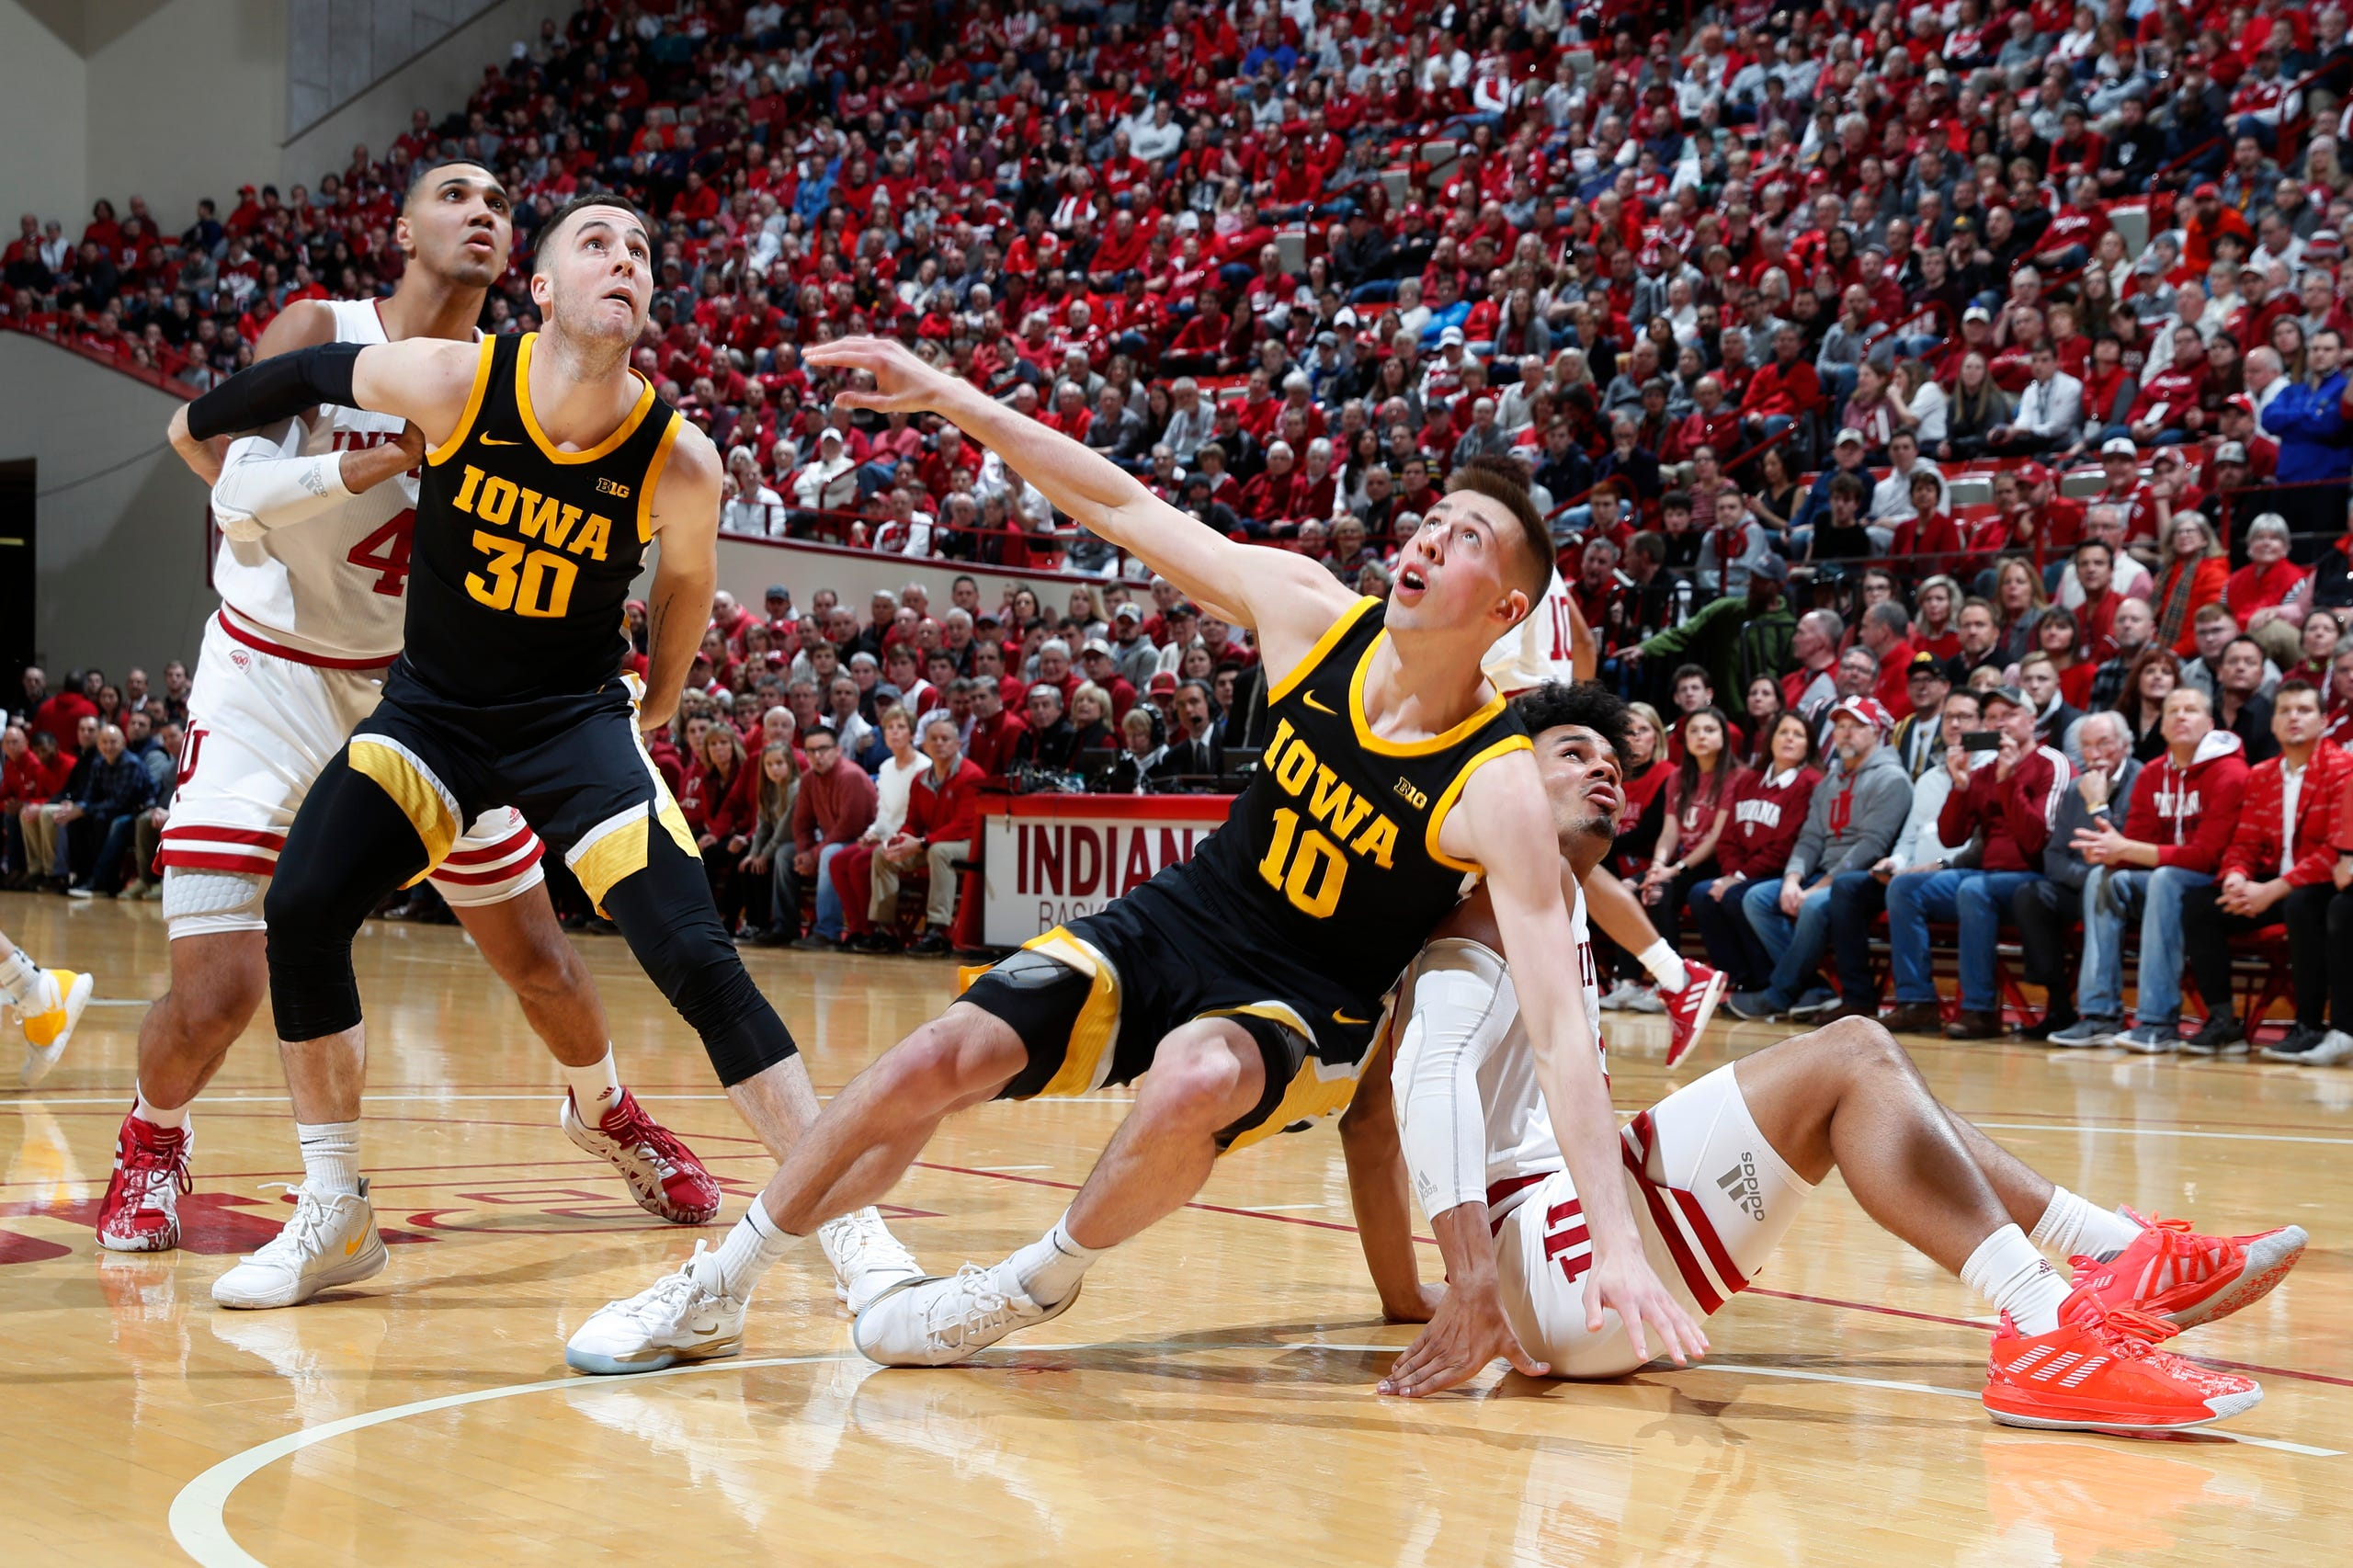 Feb. 13, 2020; Bloomington, Indiana, USA; Indiana Hoosiers forward Justin Smith (3) and Iowa Hawkeyes guard Joe Wieskamp (10) slip on the floor while battling for rebounding position during the first half at Simon Skjodt Assembly Hall.